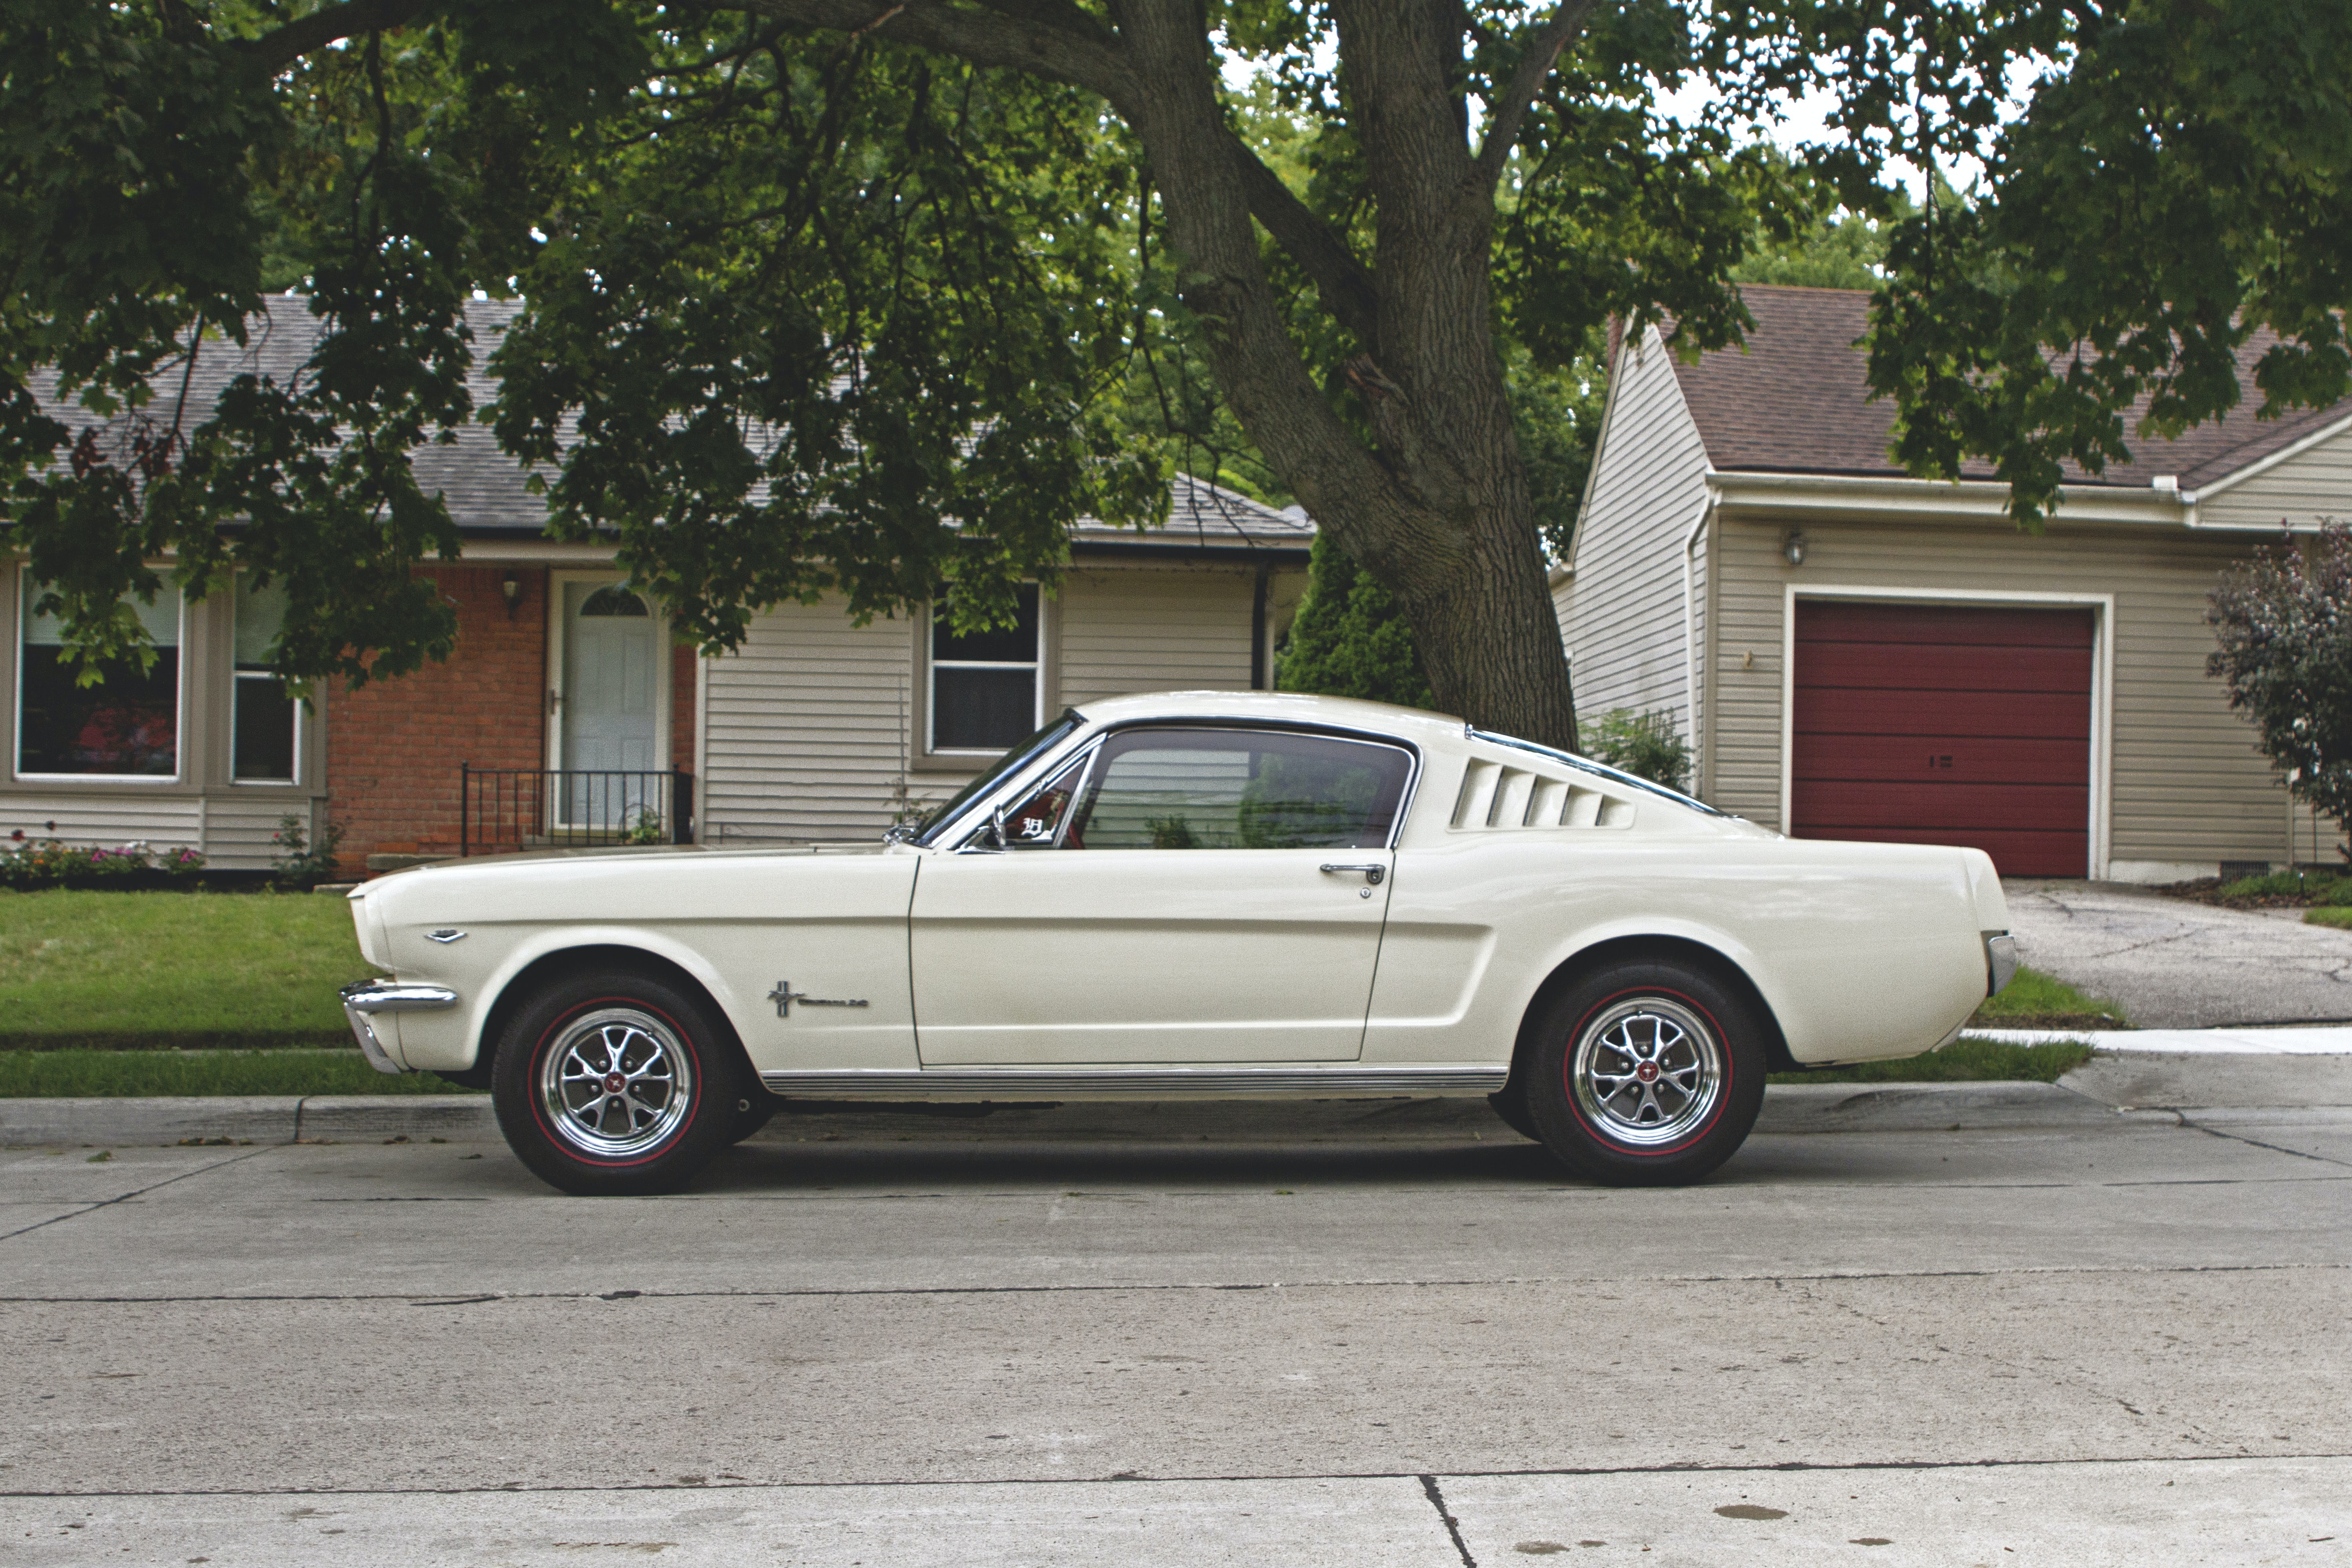 Side view of a white vintage Ford Mustang